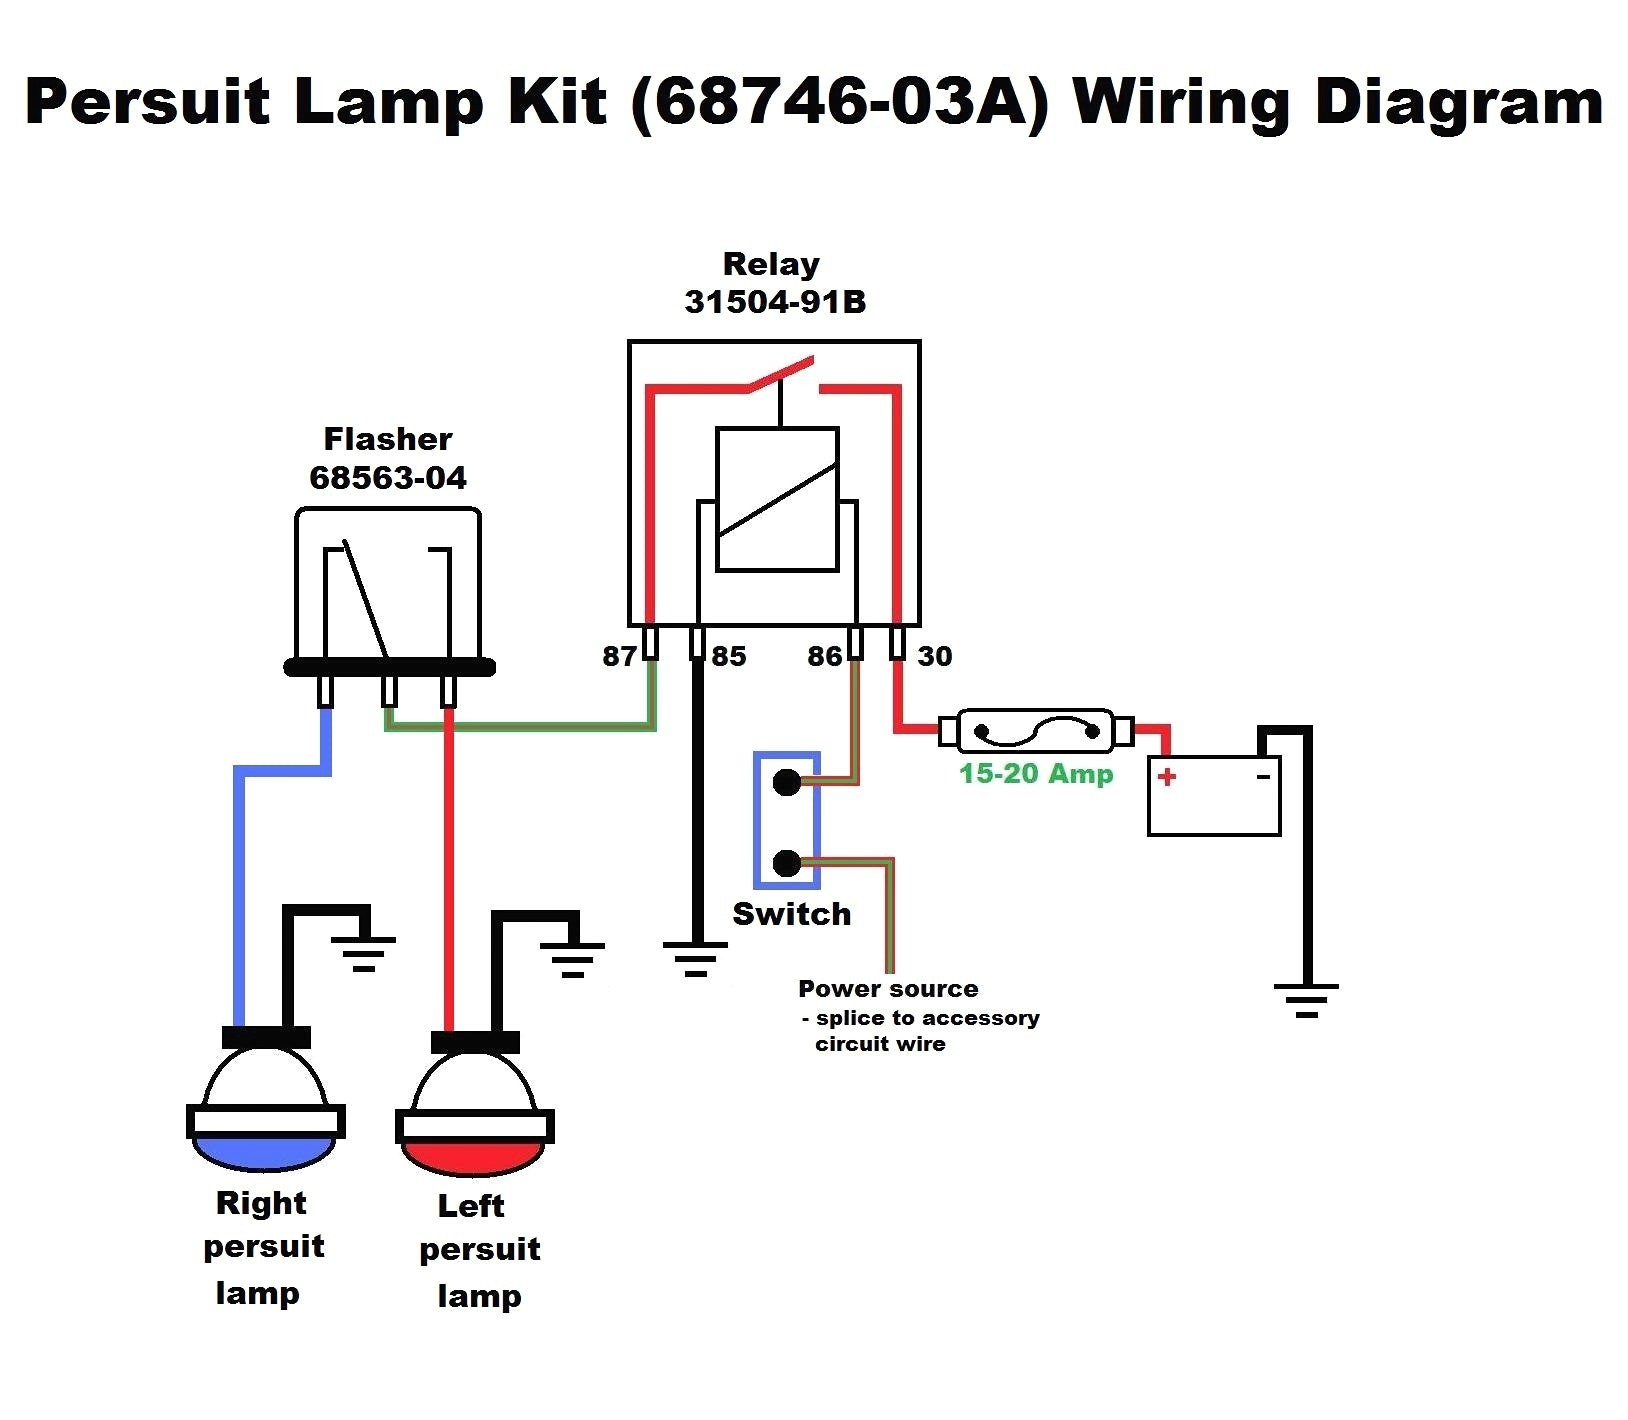 Turn Signal Flasher Wiring Diagram Signal Light Flasher Wiring Diagram Elegant Turn Signal Wiring Of Turn Signal Flasher Wiring Diagram Mga Turn Signal Wiring Diagram 15 13nualuniverse •